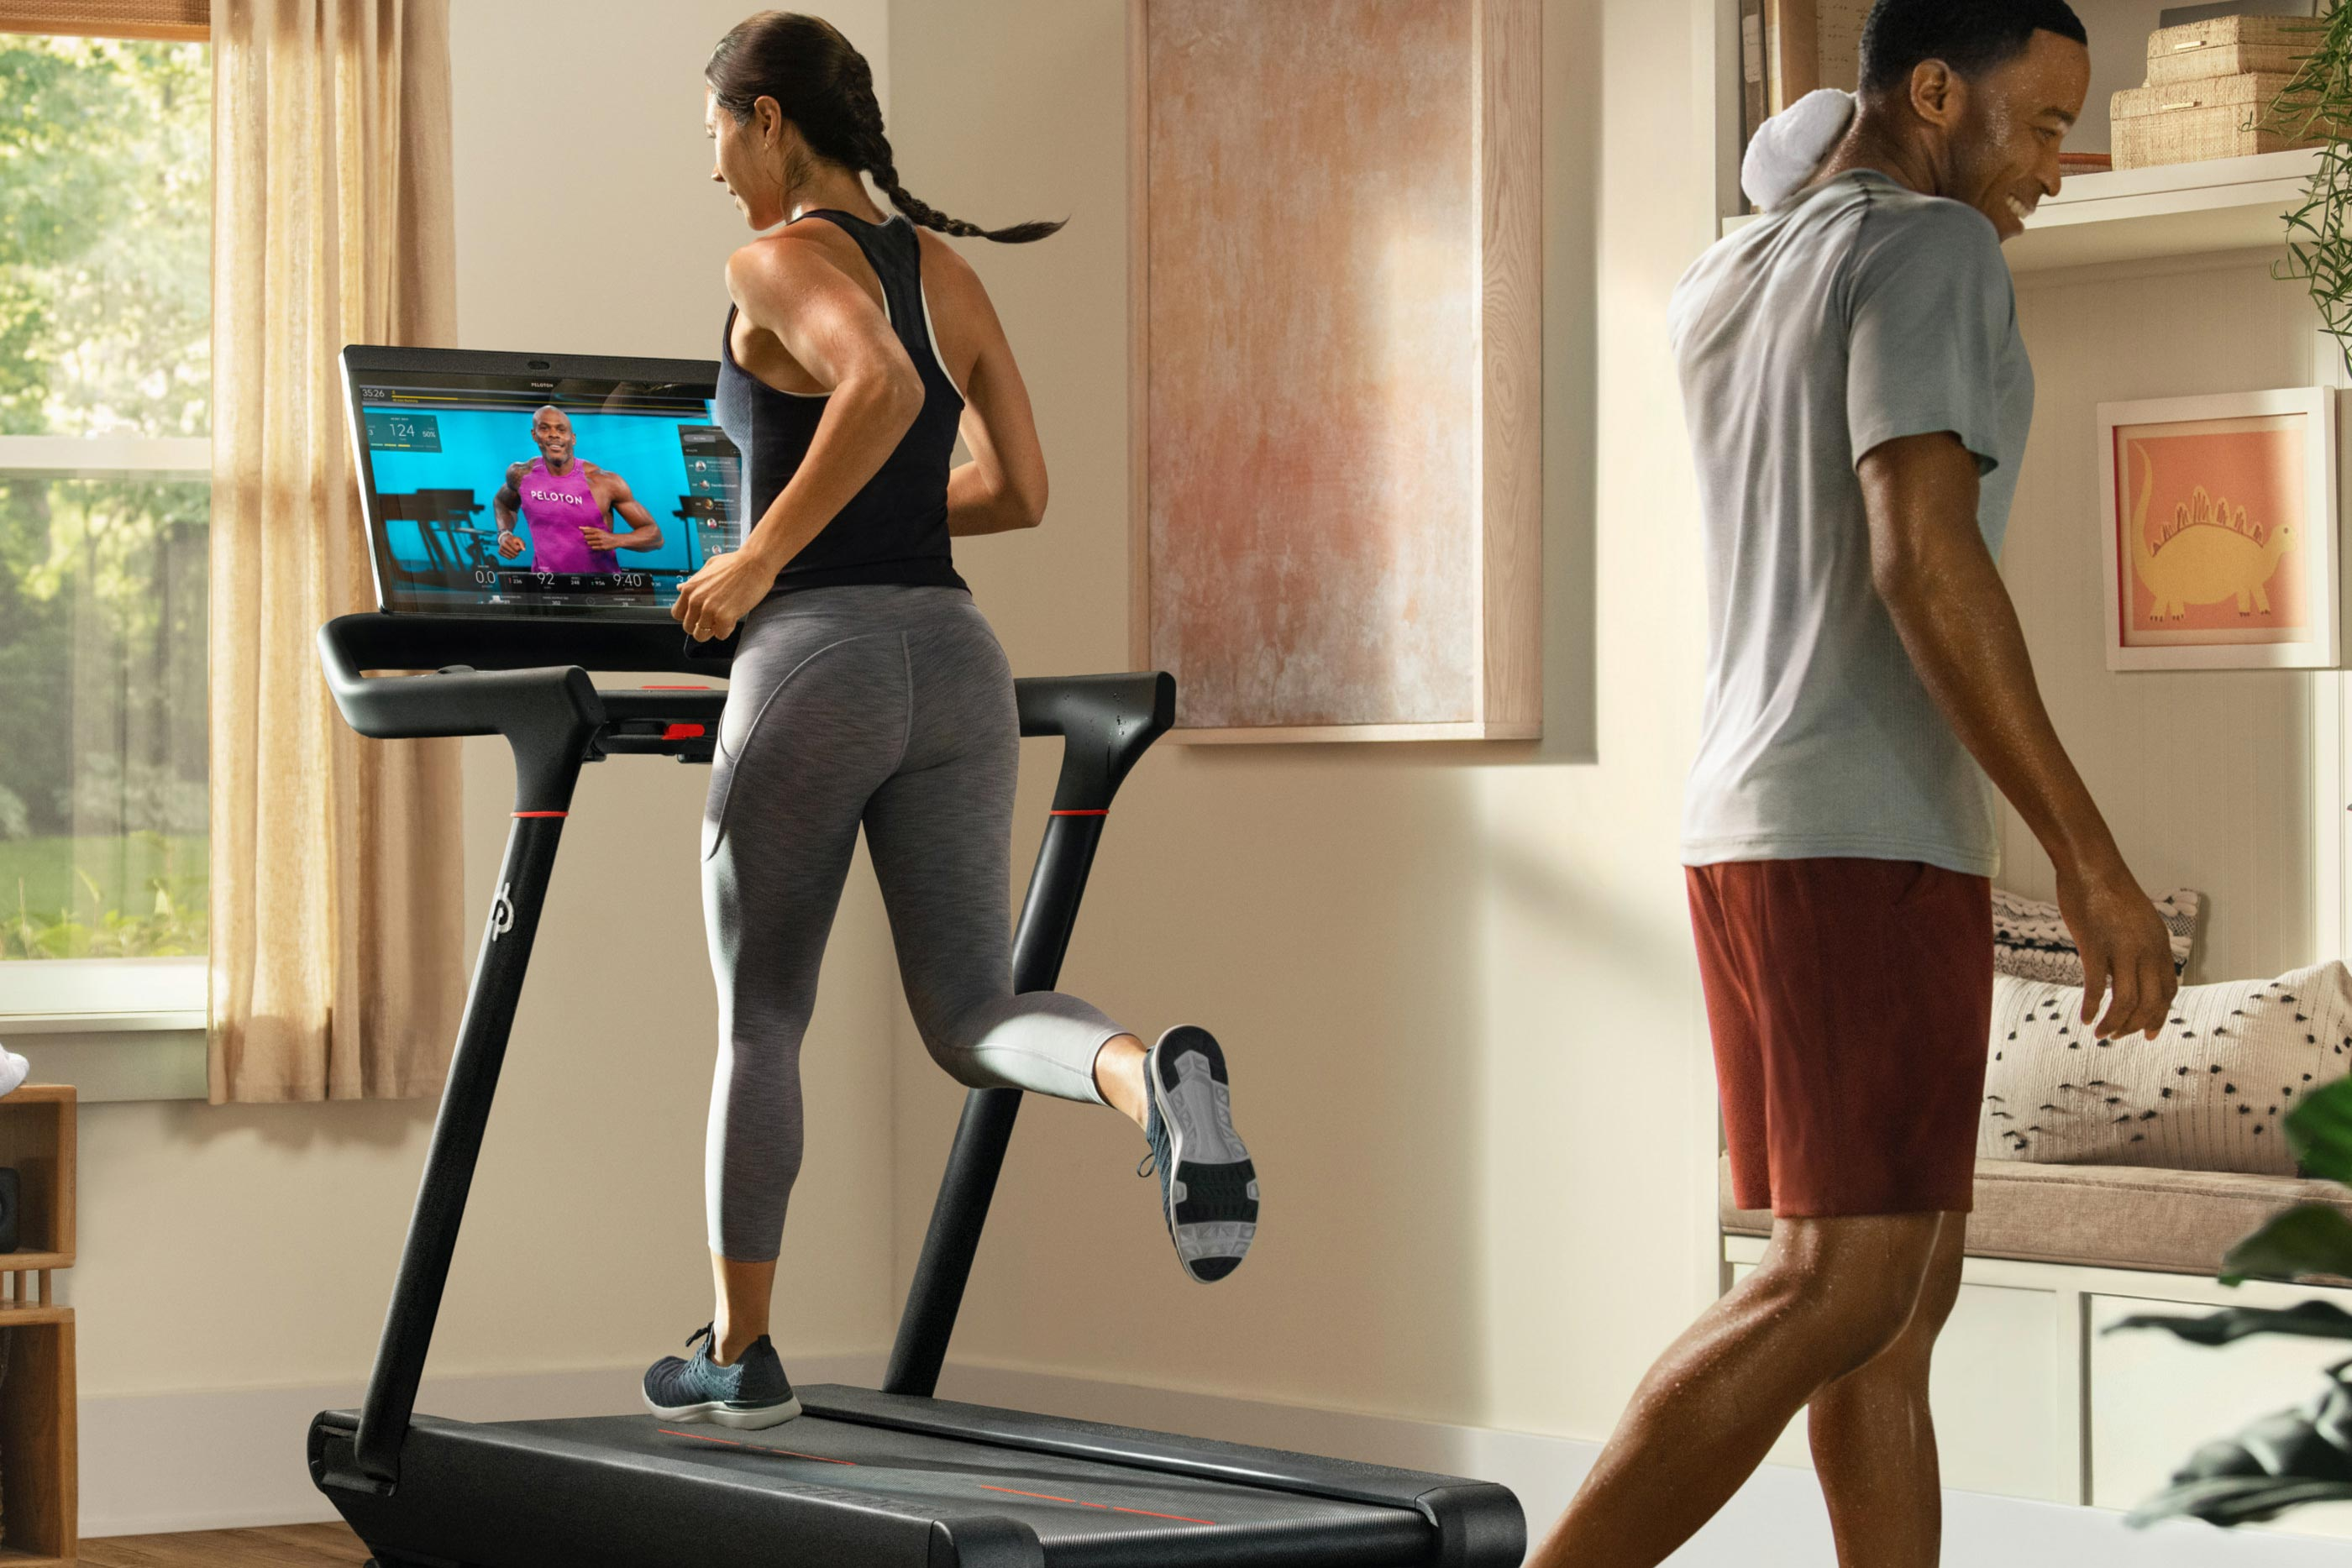 Peloton agrees to a costly recall, and Trump's Facebook account is in limbo: Thursday Wake-Up Call